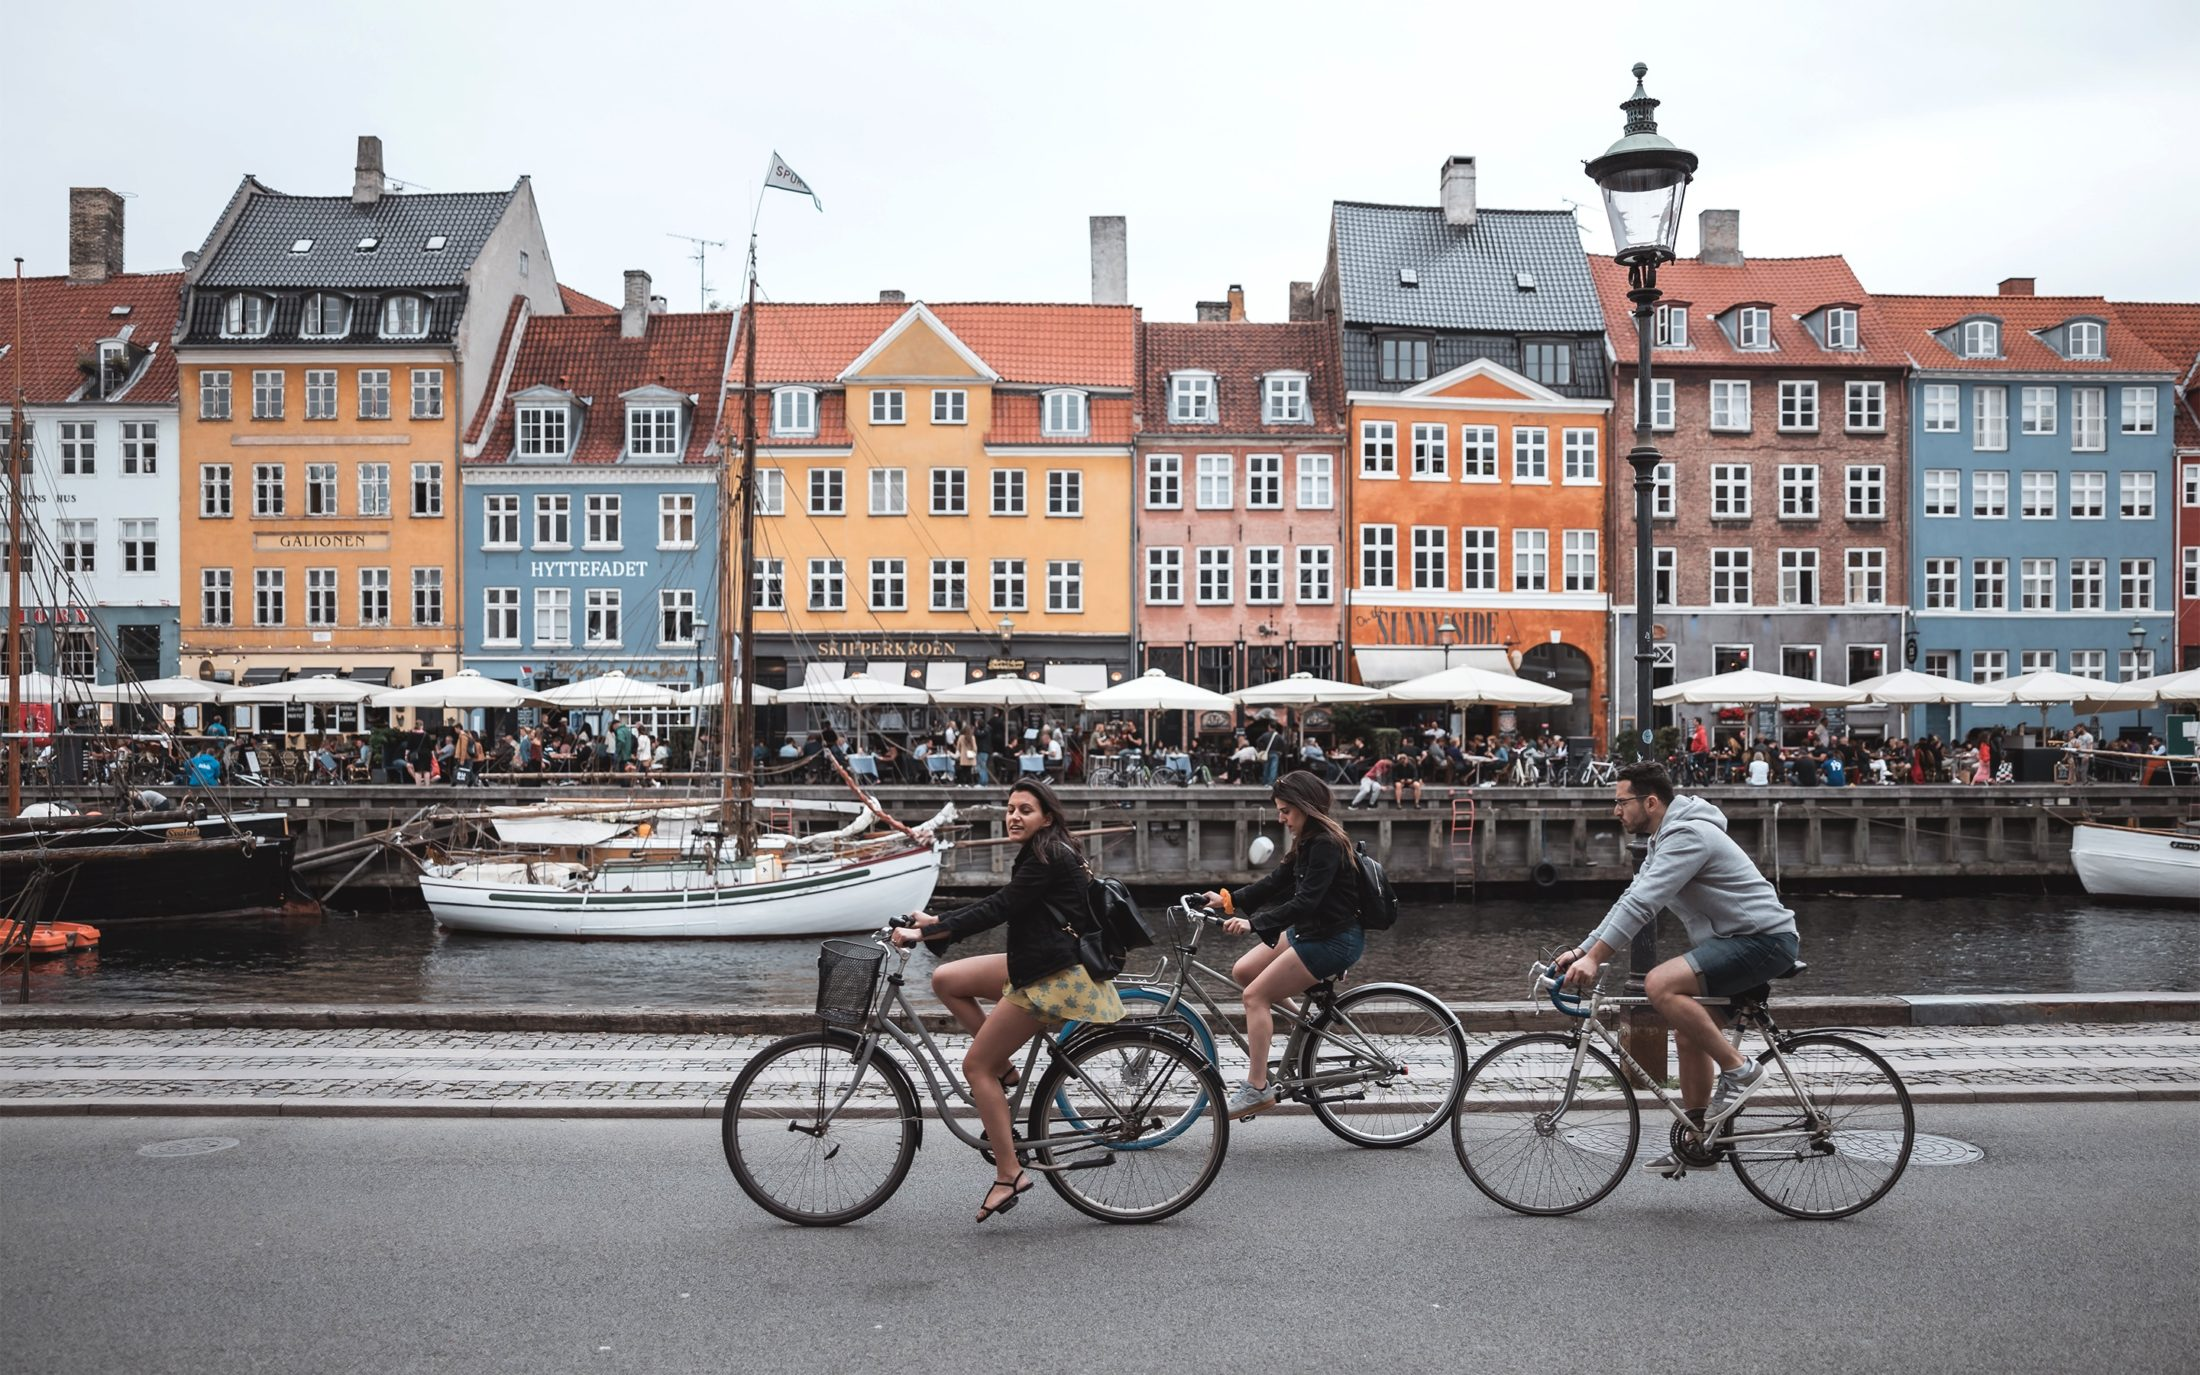 People Like to Live in Denmark